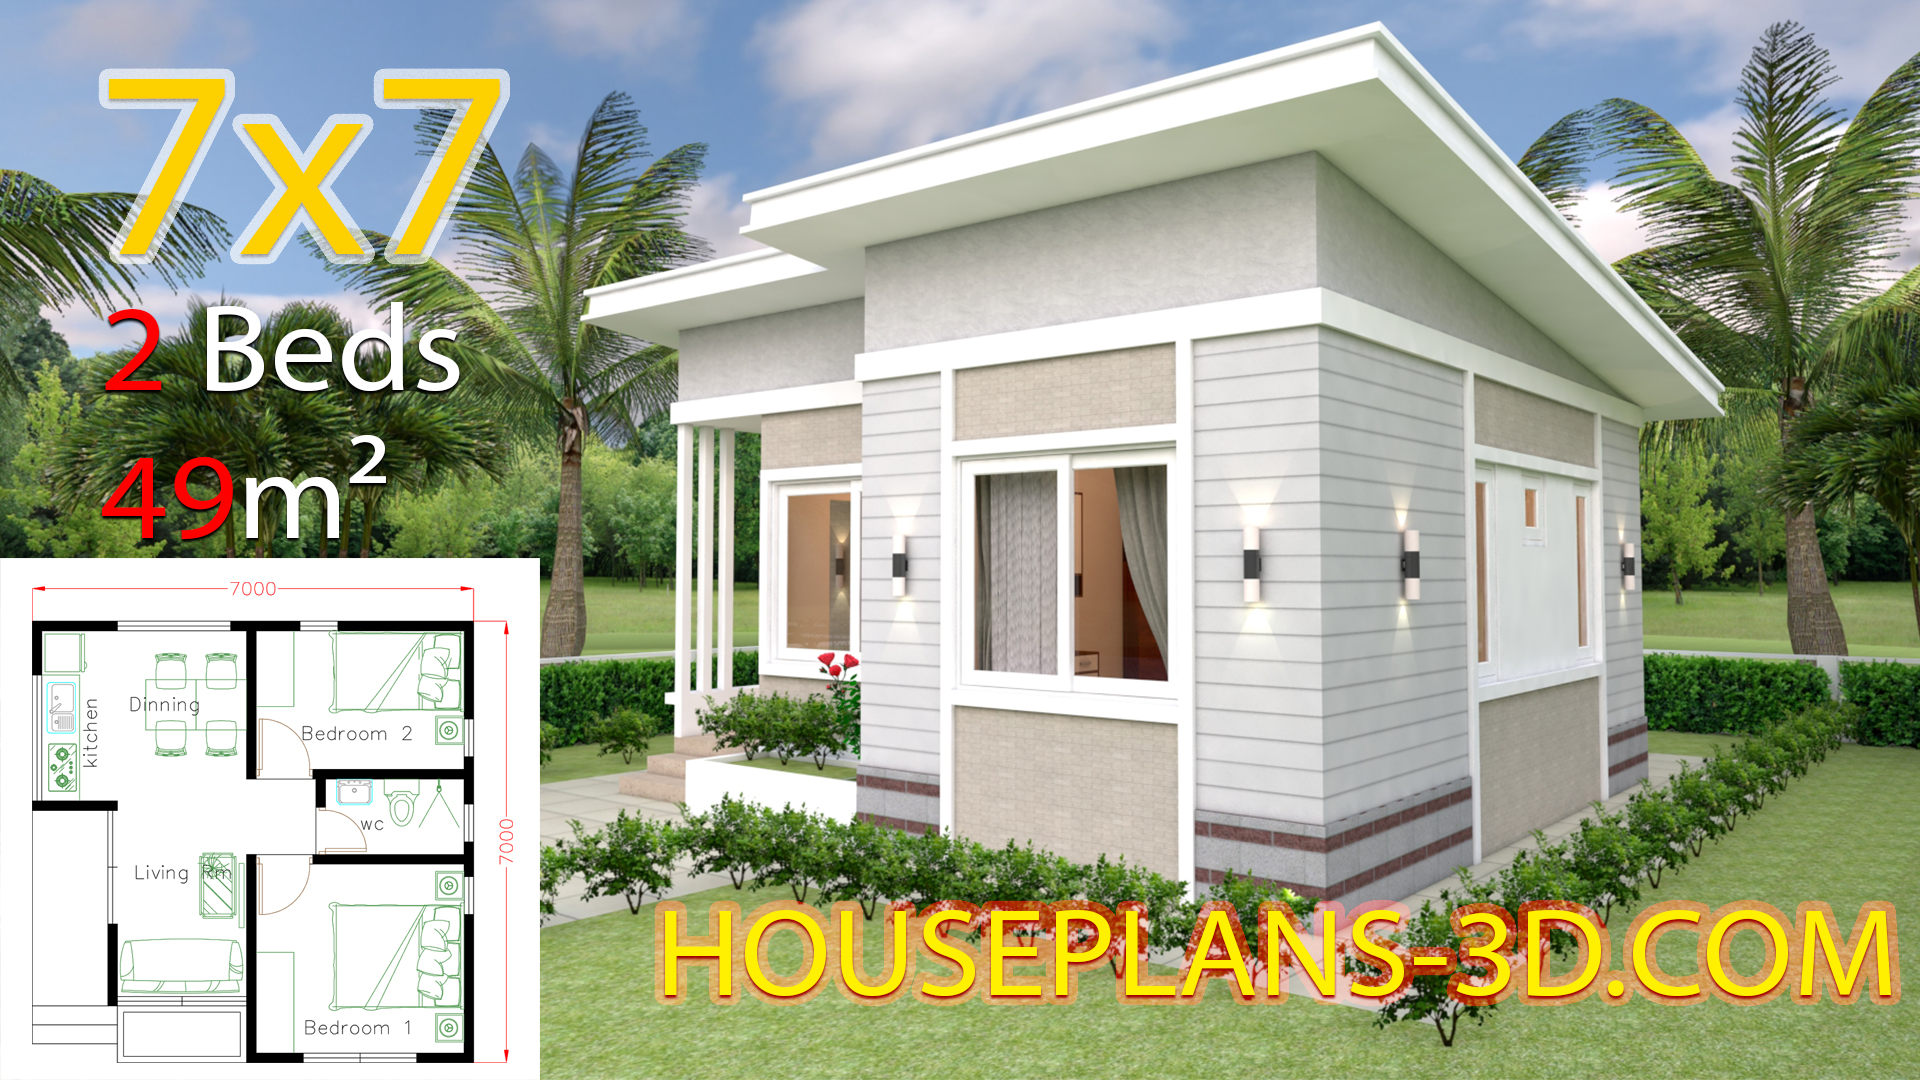 Small House Design 7x7 With 2 Bedrooms House Plans 3d